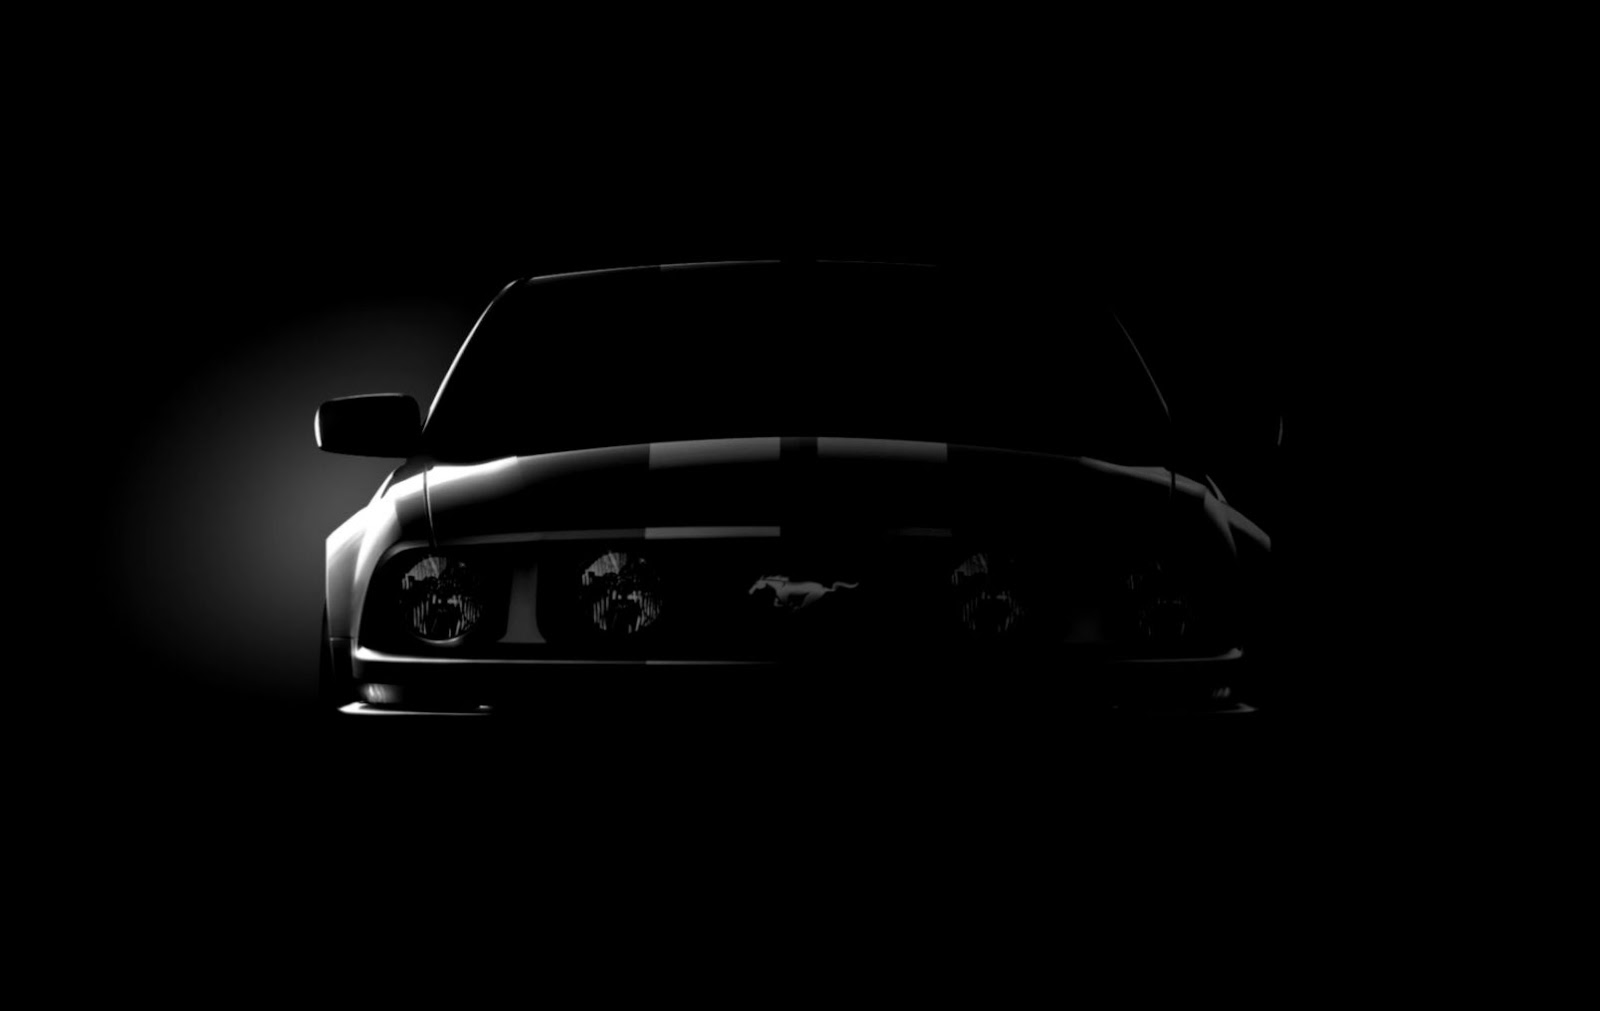 Our content team will publish new car wallpapers daily. Black Wallpaper For Mobile Wild Country Fine Arts